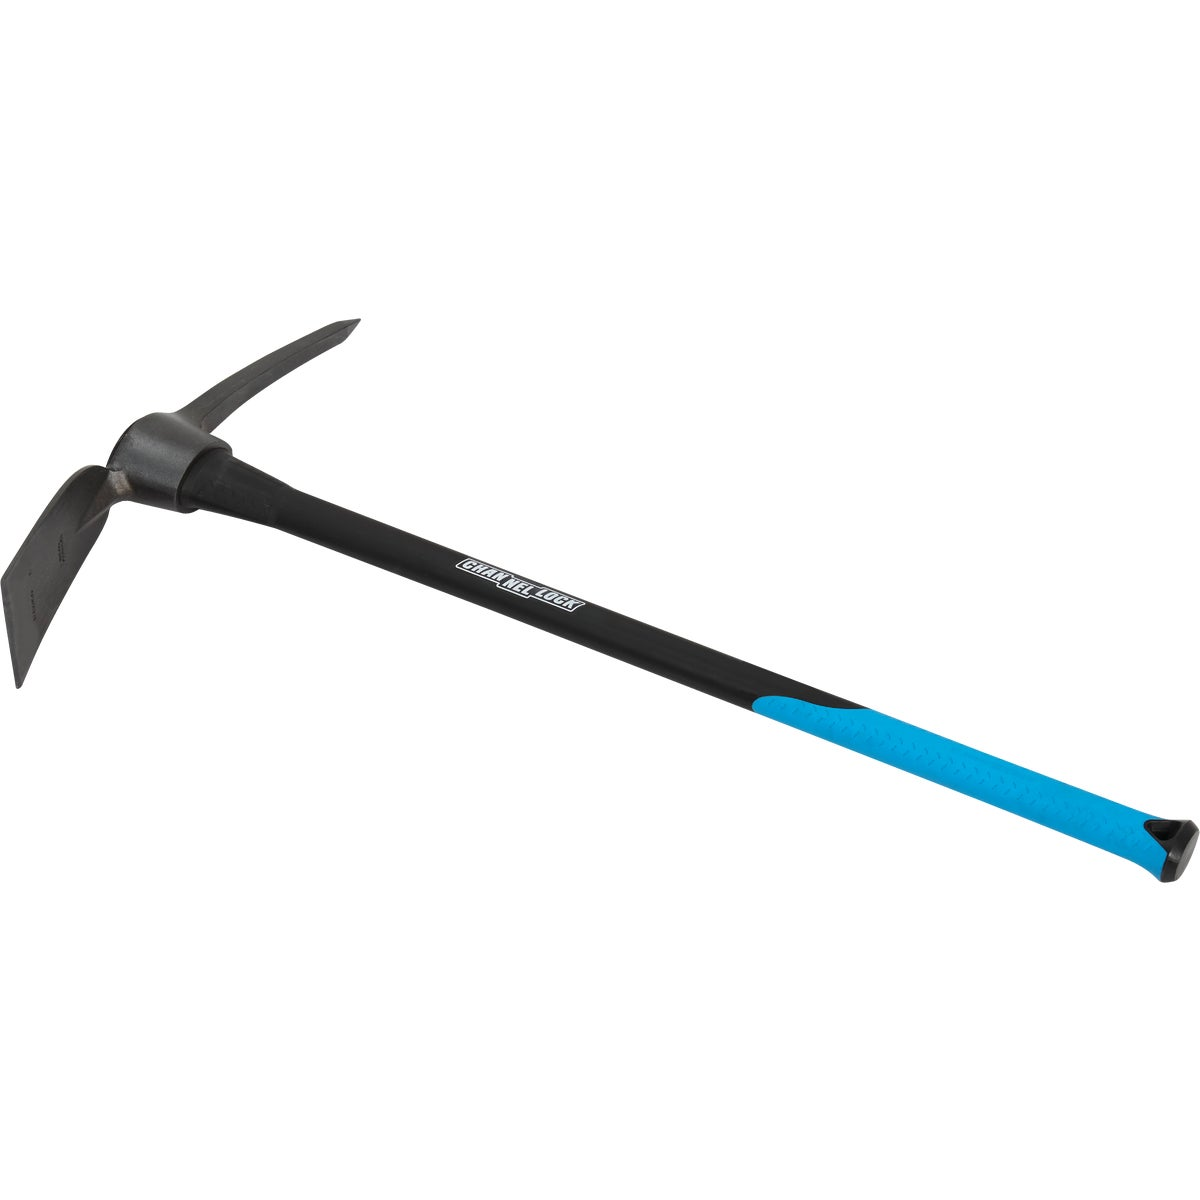 5LB PICK MATTOCK - 34240 by Channellock®